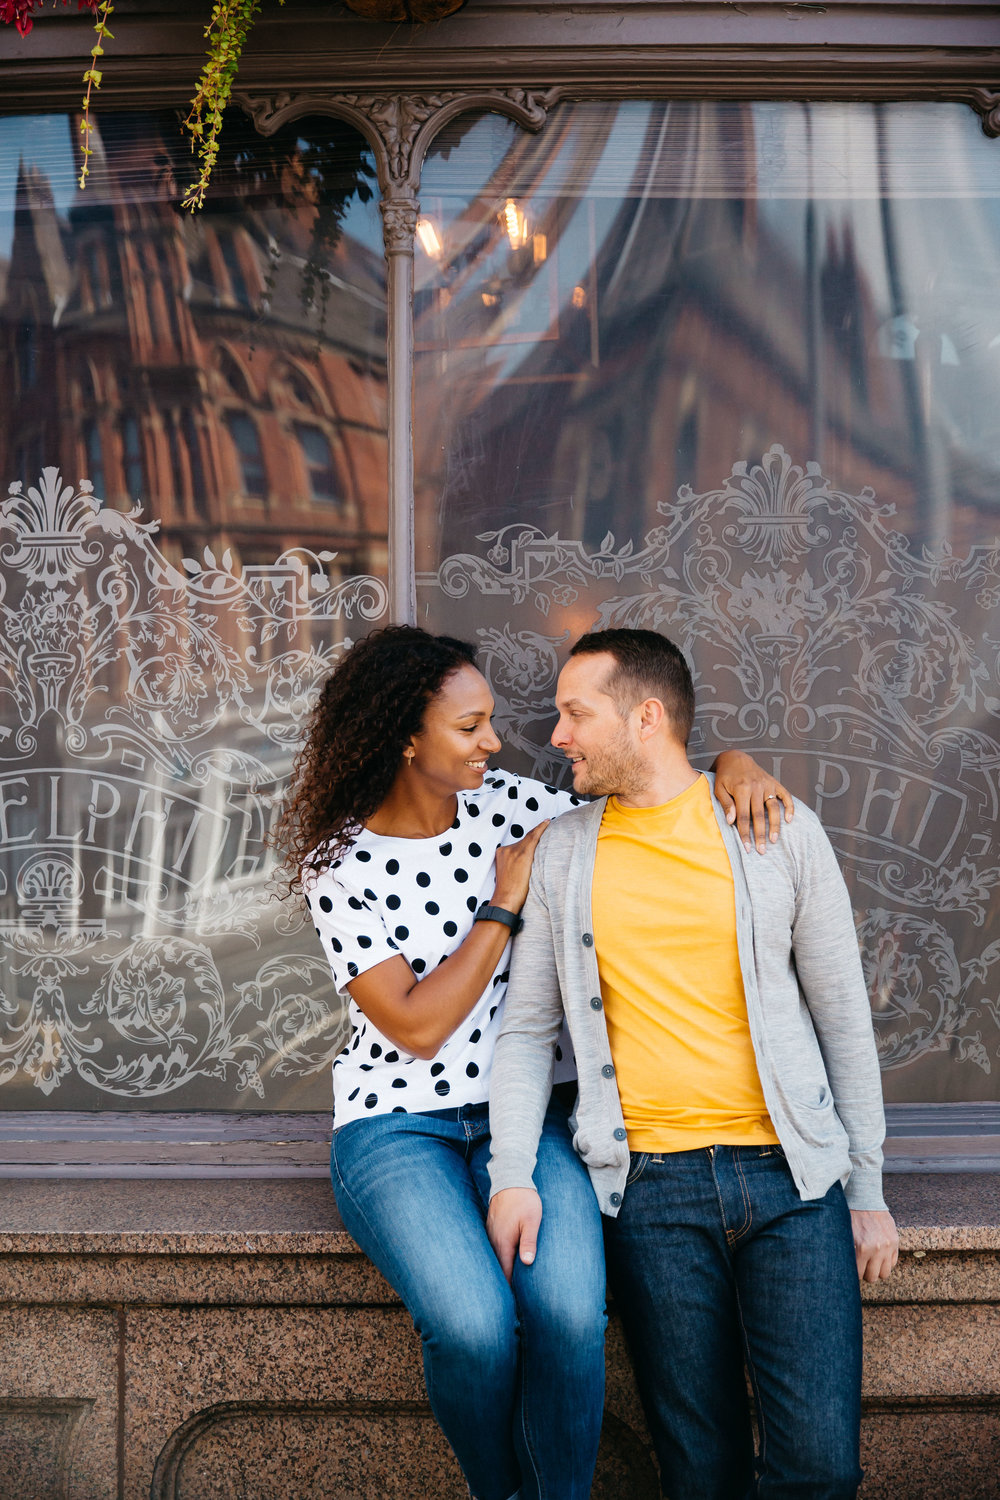 Leicia & Dan's engagement shoot at The Adelphi Leeds